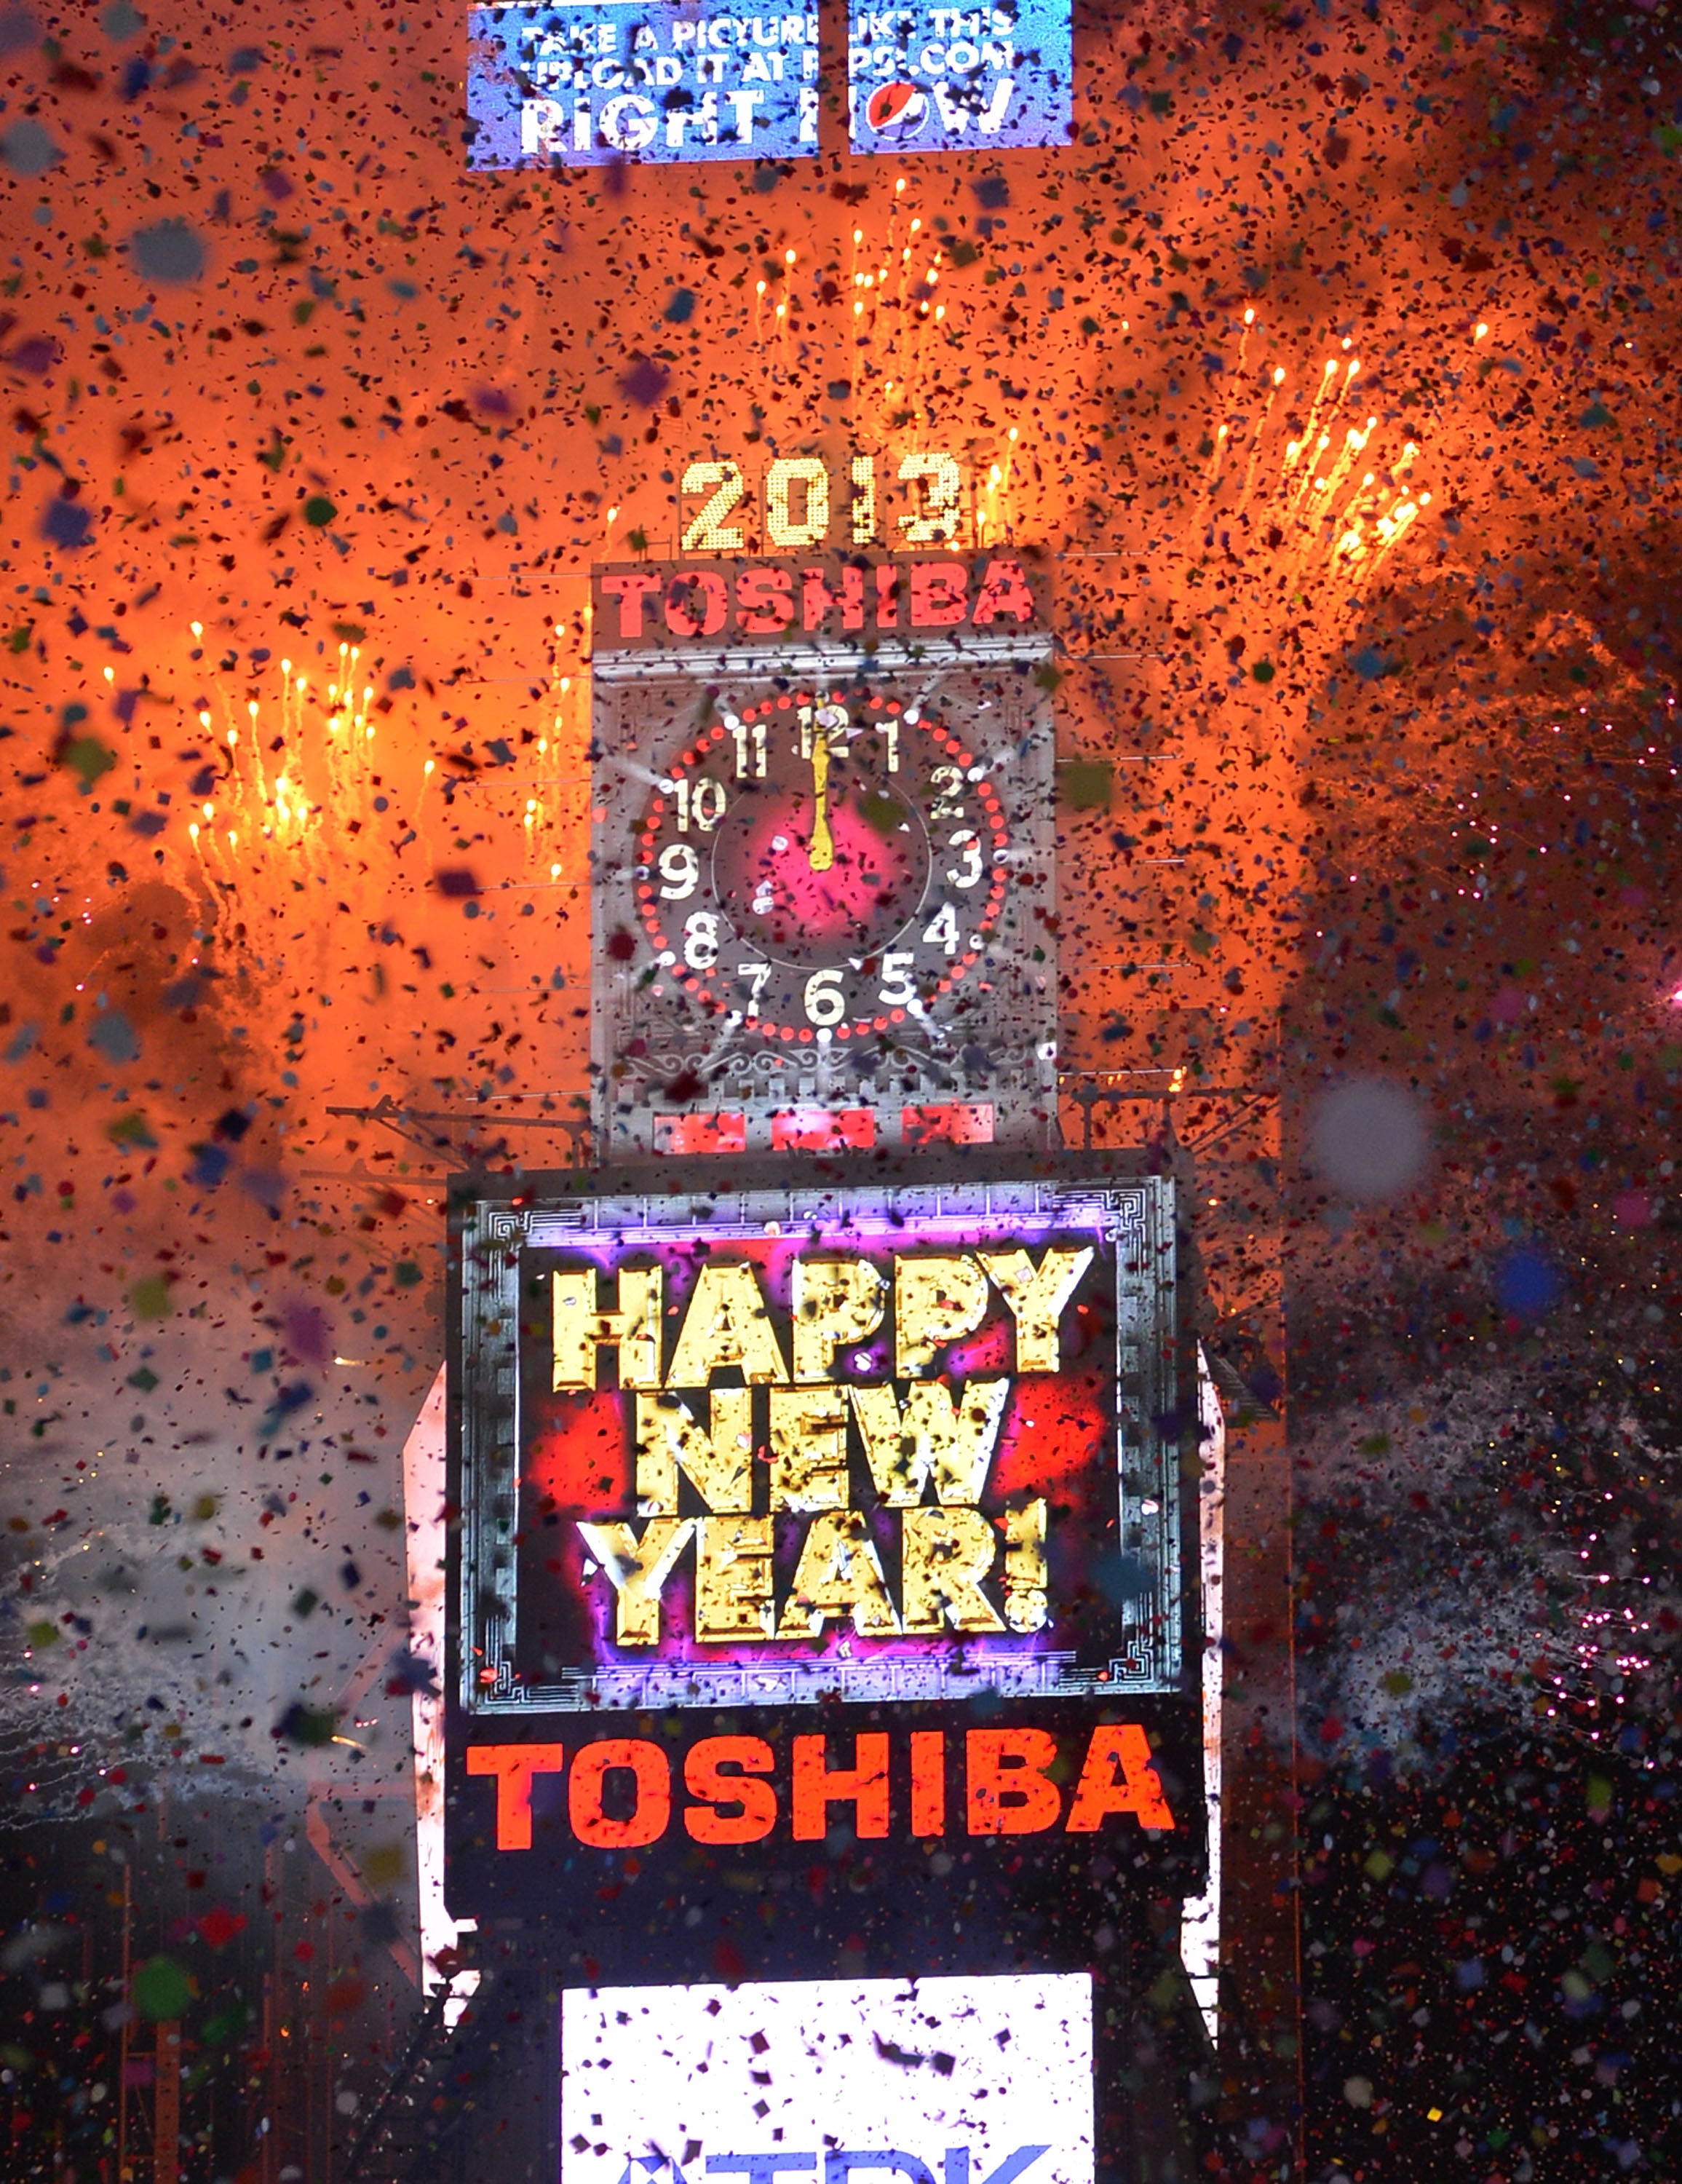 A view of atmosphere during New Year's Eve 2013 In Times Square at Times Square on December 31, 2012 in New York City.